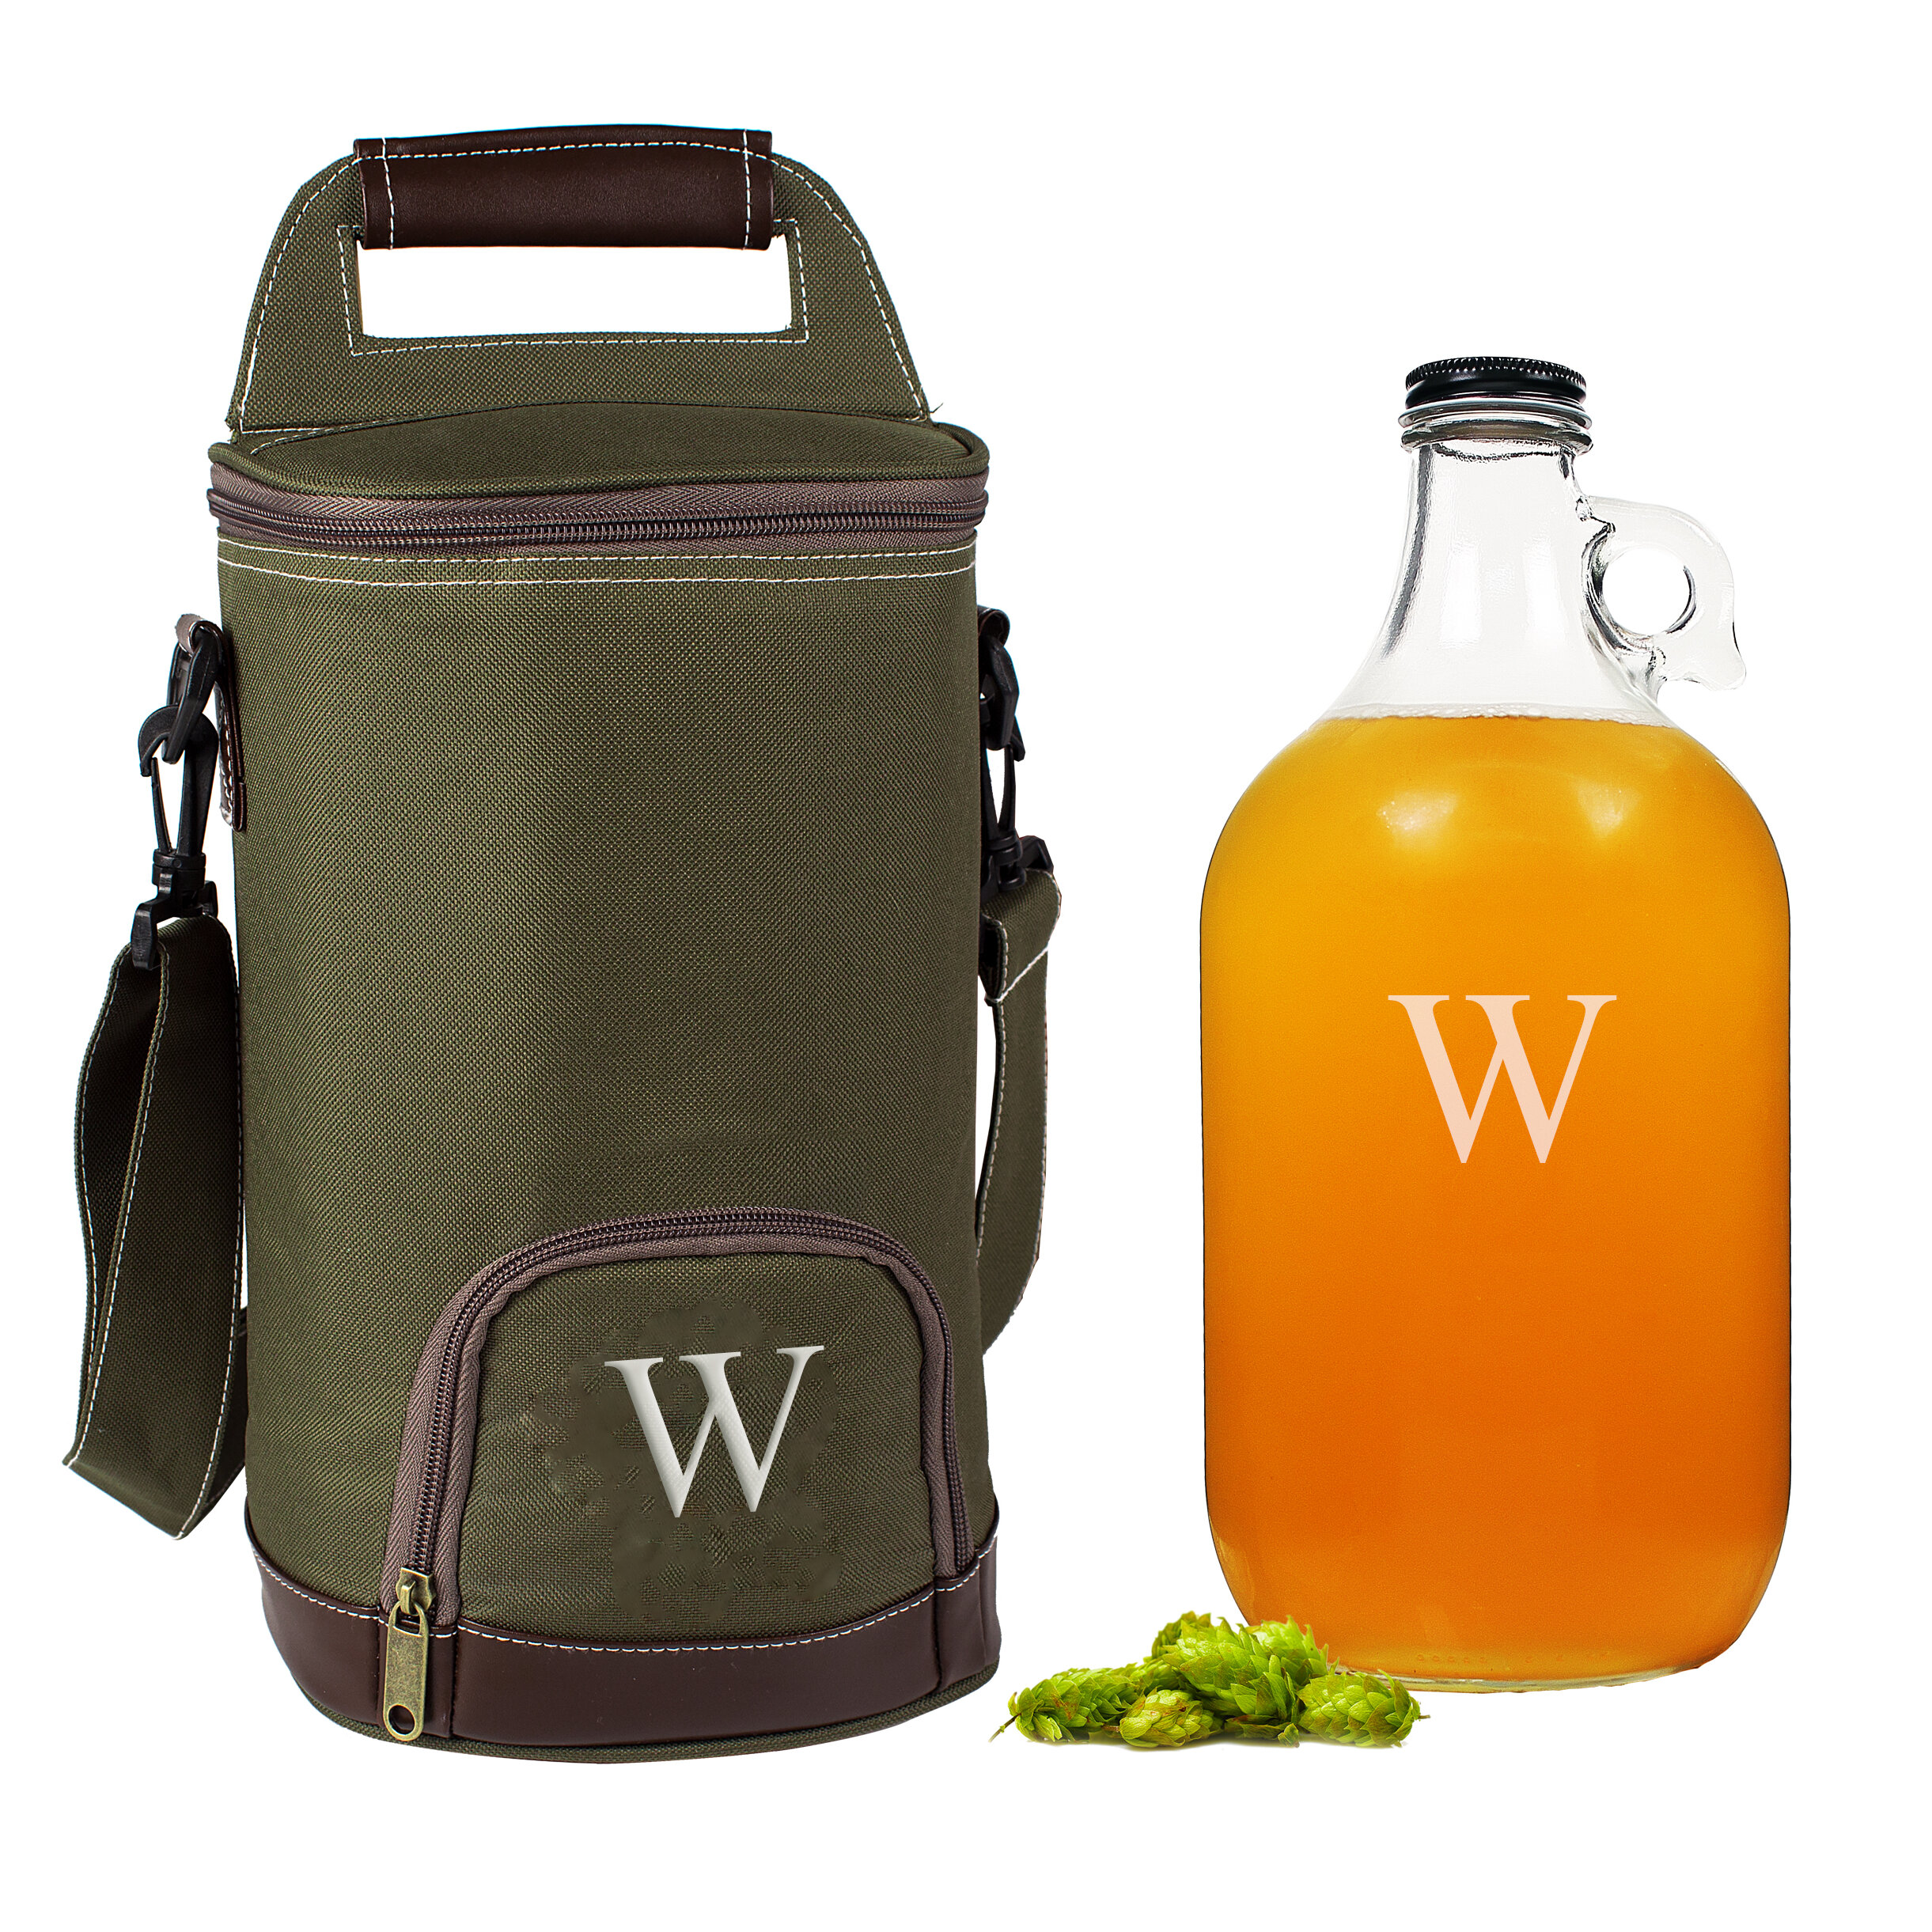 Cathys Concepts Personalized Insulated Growler Cooler with Growler    Reviews  361195402b28c